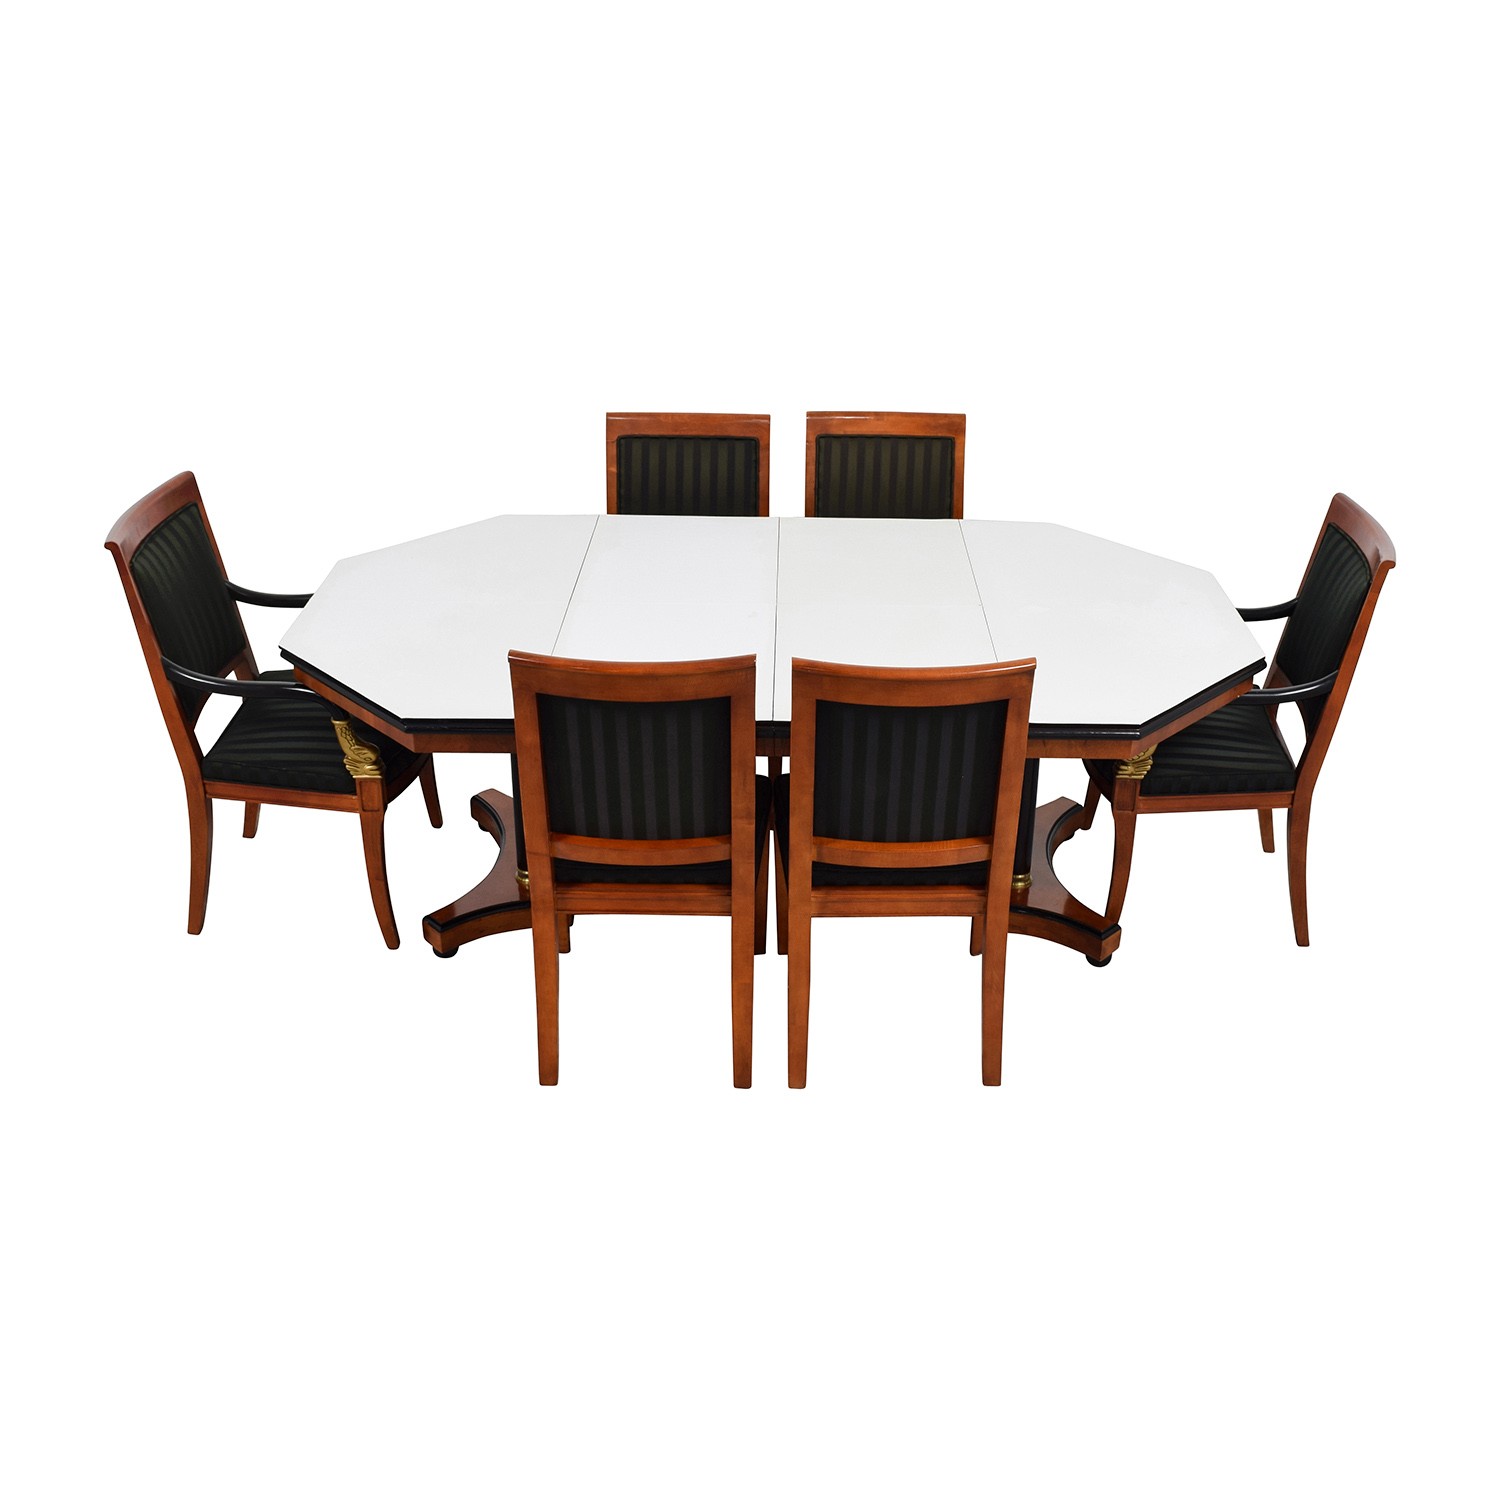 89 OFF Vintage Dining Table Set with Gold Accent Tables : used vintage dining table set with gold accent from furnishare.com size 1500 x 1500 jpeg 244kB